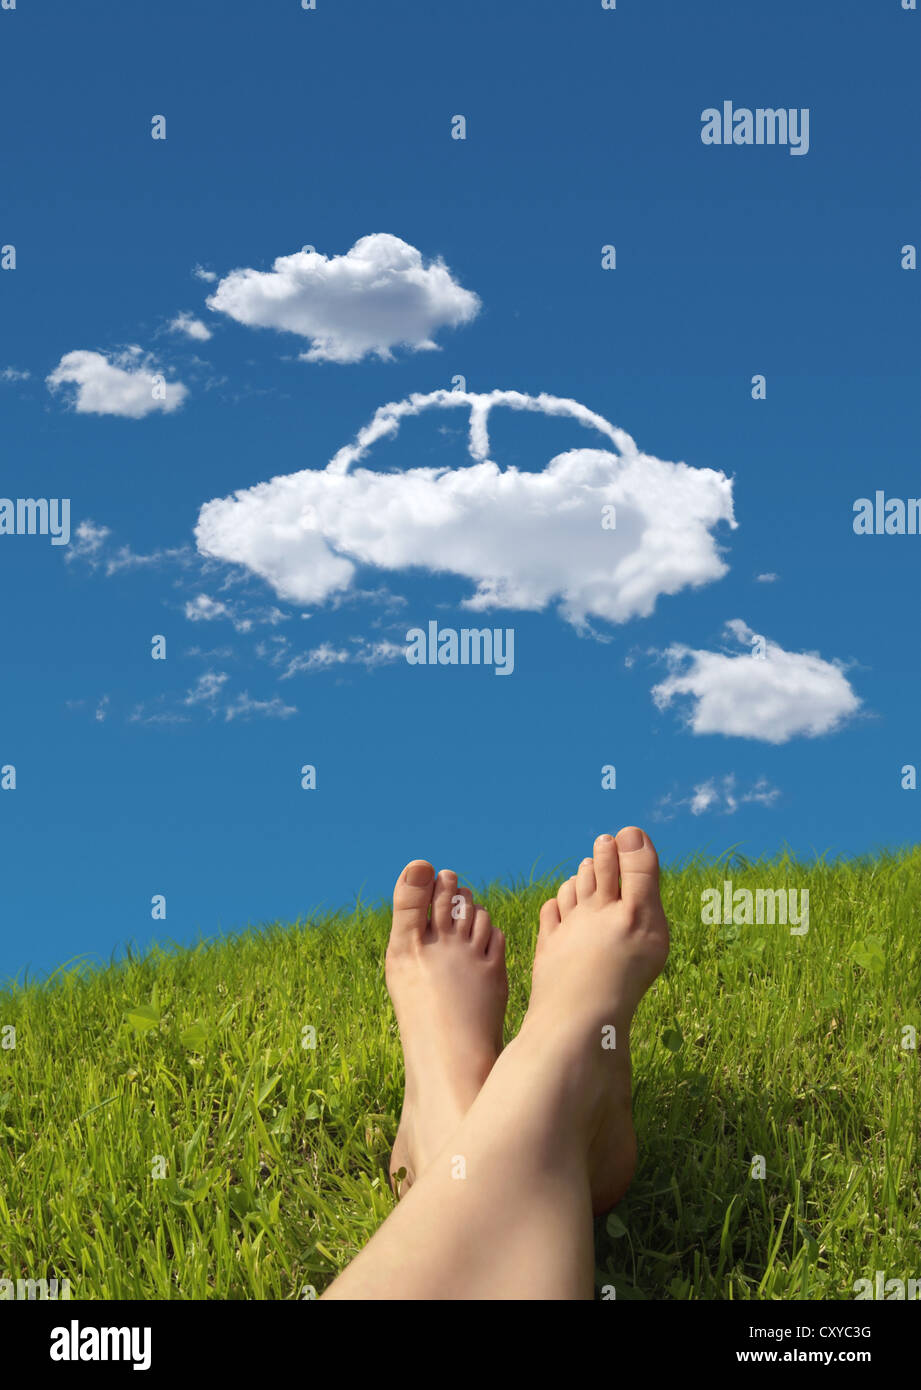 Woman lying on a meadow, detail of feet with a car-shaped cloud formation in the sky - Stock Image